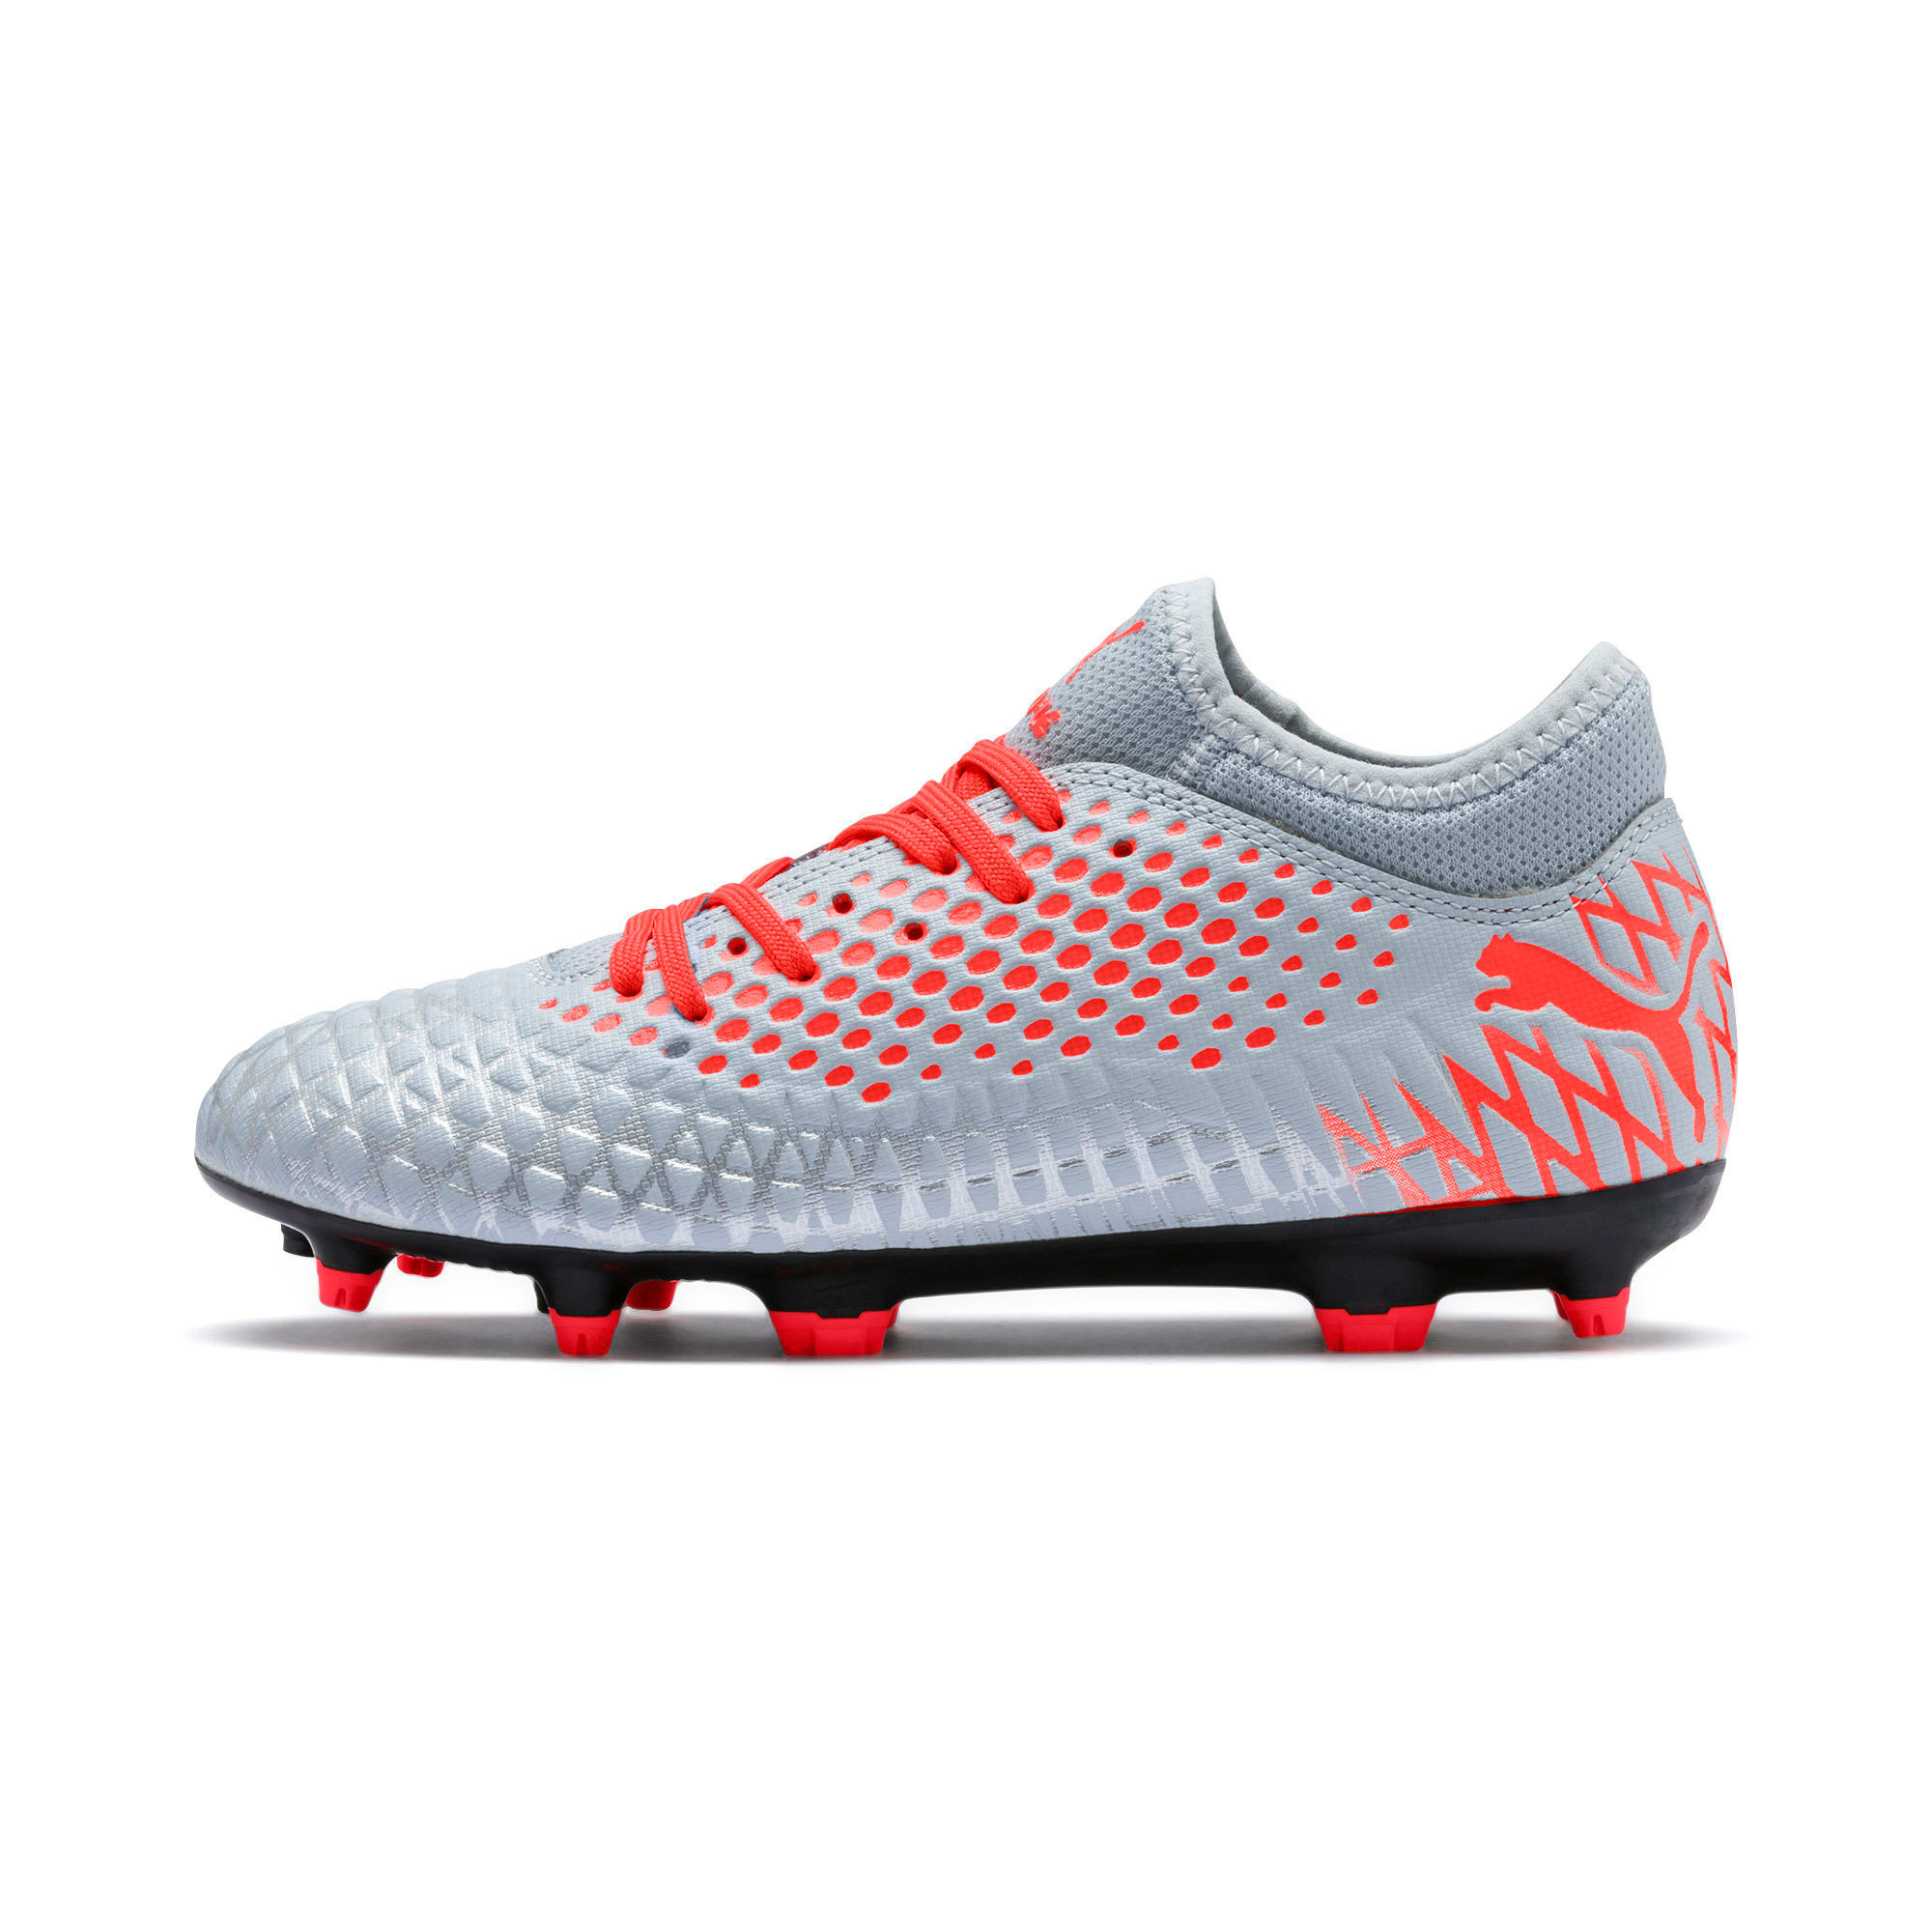 Thumbnail 1 of FUTURE 4.4 Youth Football Boots, Glacial Blue-Nrgy Red, medium-IND